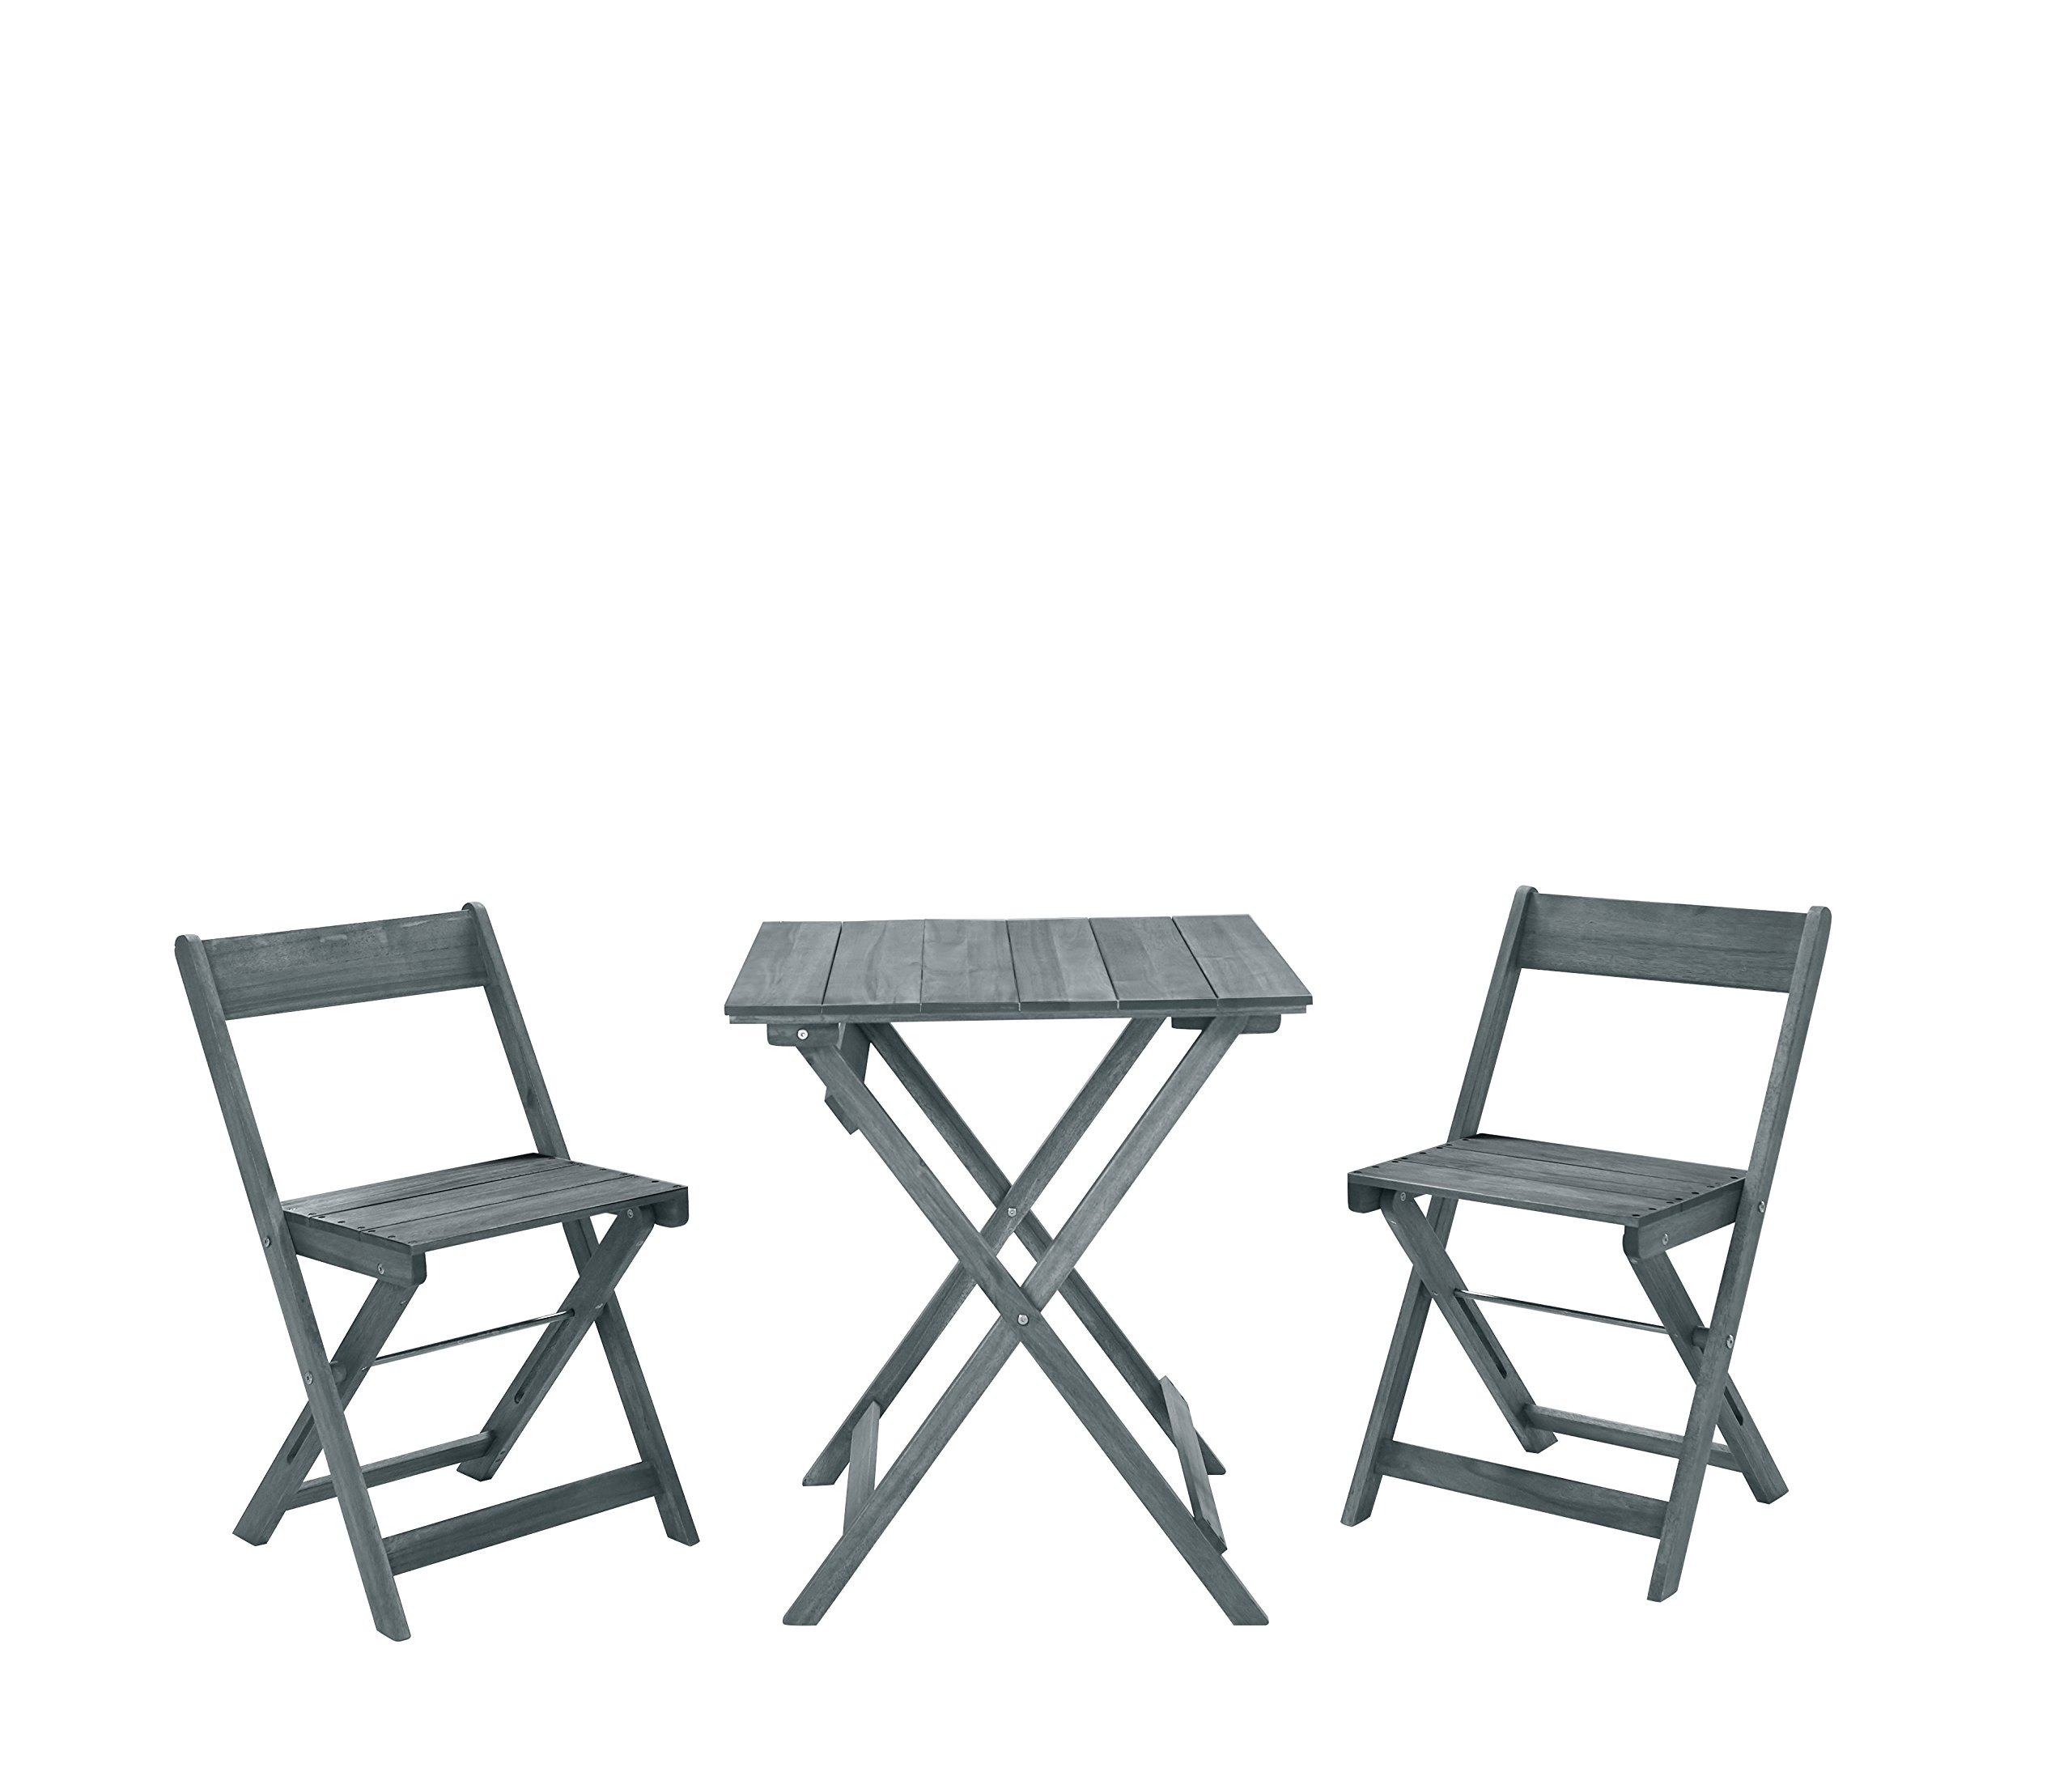 Linon 3-Pc Rockport Square Table Set in Gray by Linon